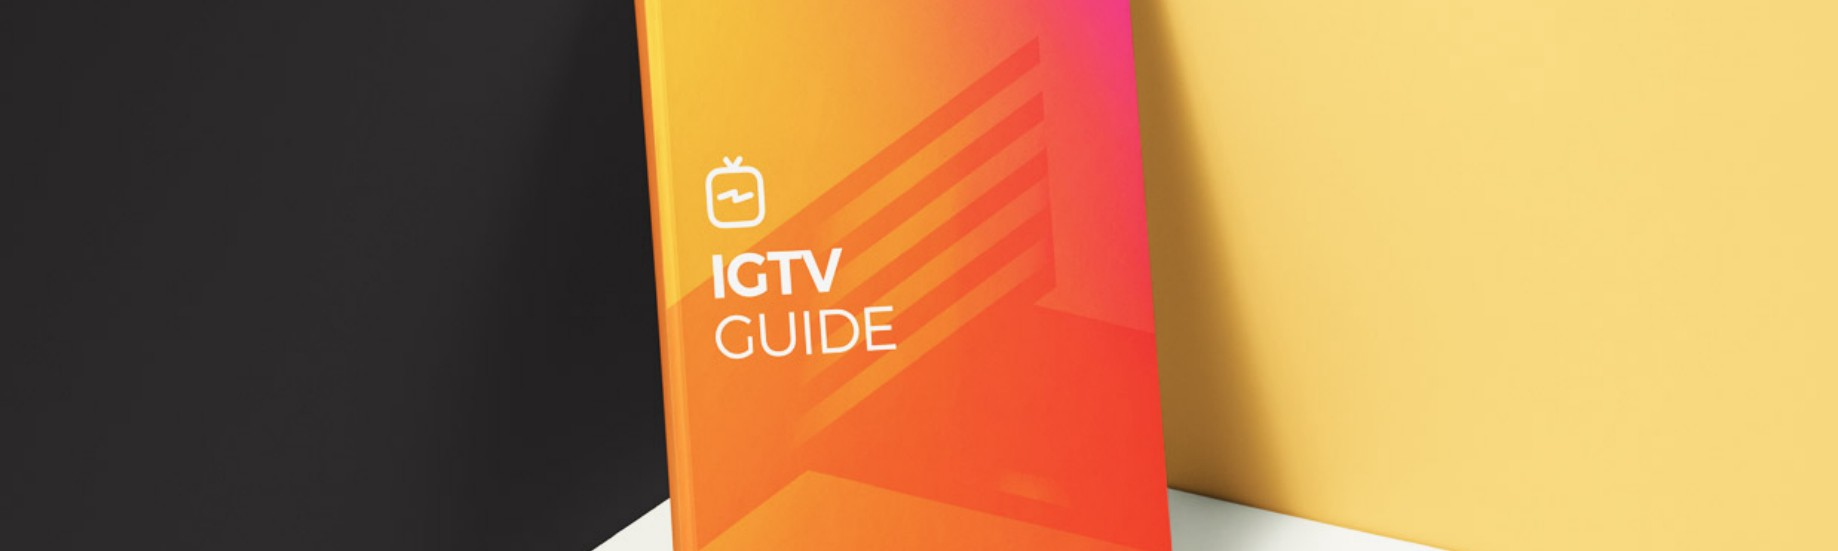 IGTV GUIDE — Everything you need to know about the new